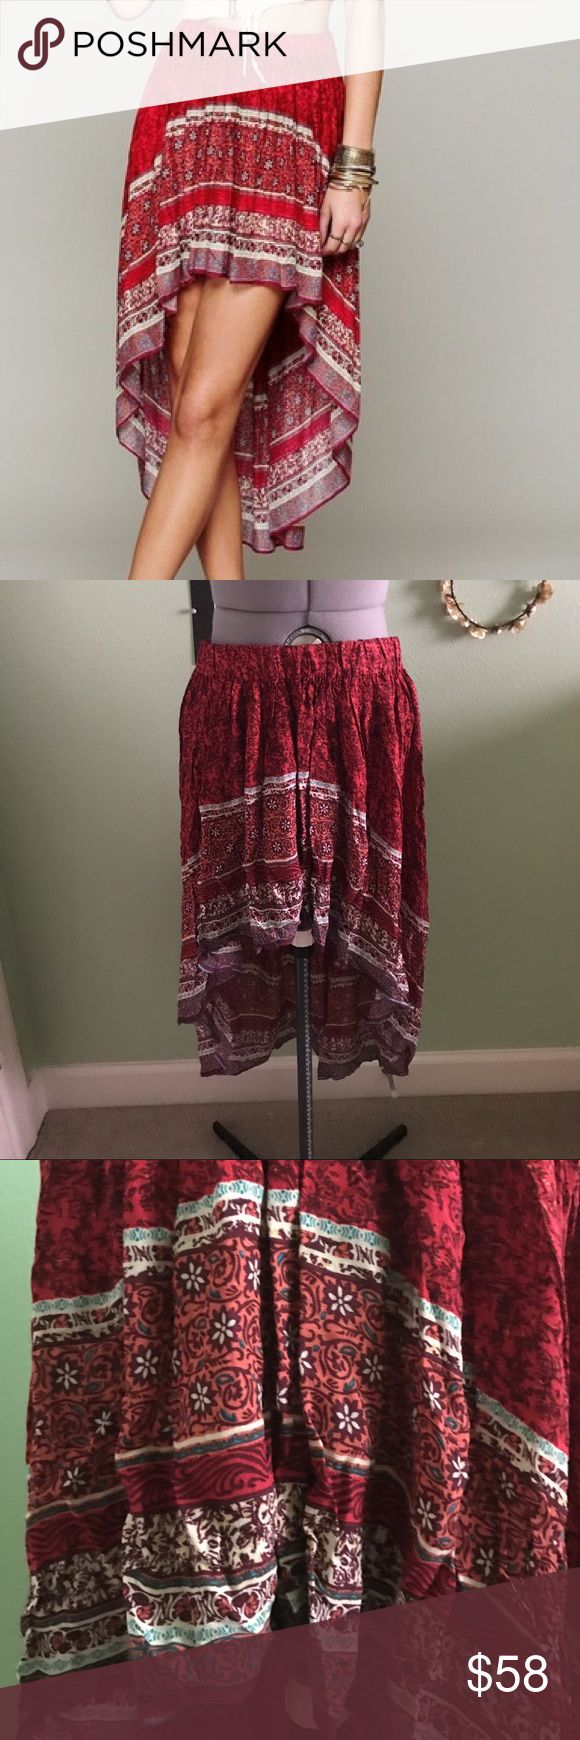 Free People Border Print High Low Slip Skirt Free People border print high low slip skirt. Crimson or red color with popping blue details. Gorgeous patterns and high low style. Size medium, but would sit on the hips of a size small. Worn once. Let me know if you have any questions! Free People Skirts High Low